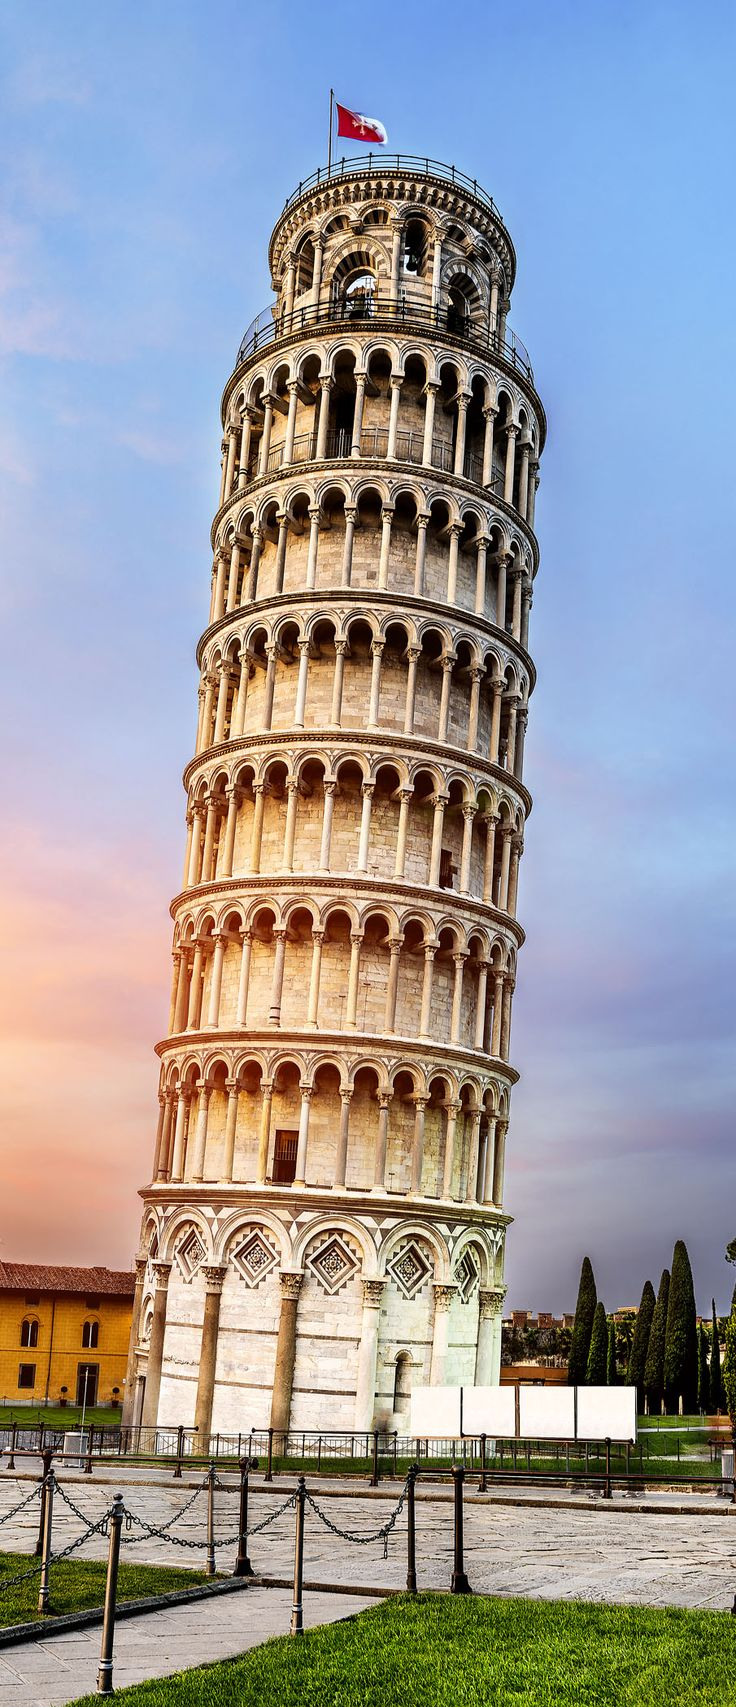 Pisa, place of miracles: The leaning tower of Pisa. Tuscany, Italy | 15 Most Colorful Shots of Italy